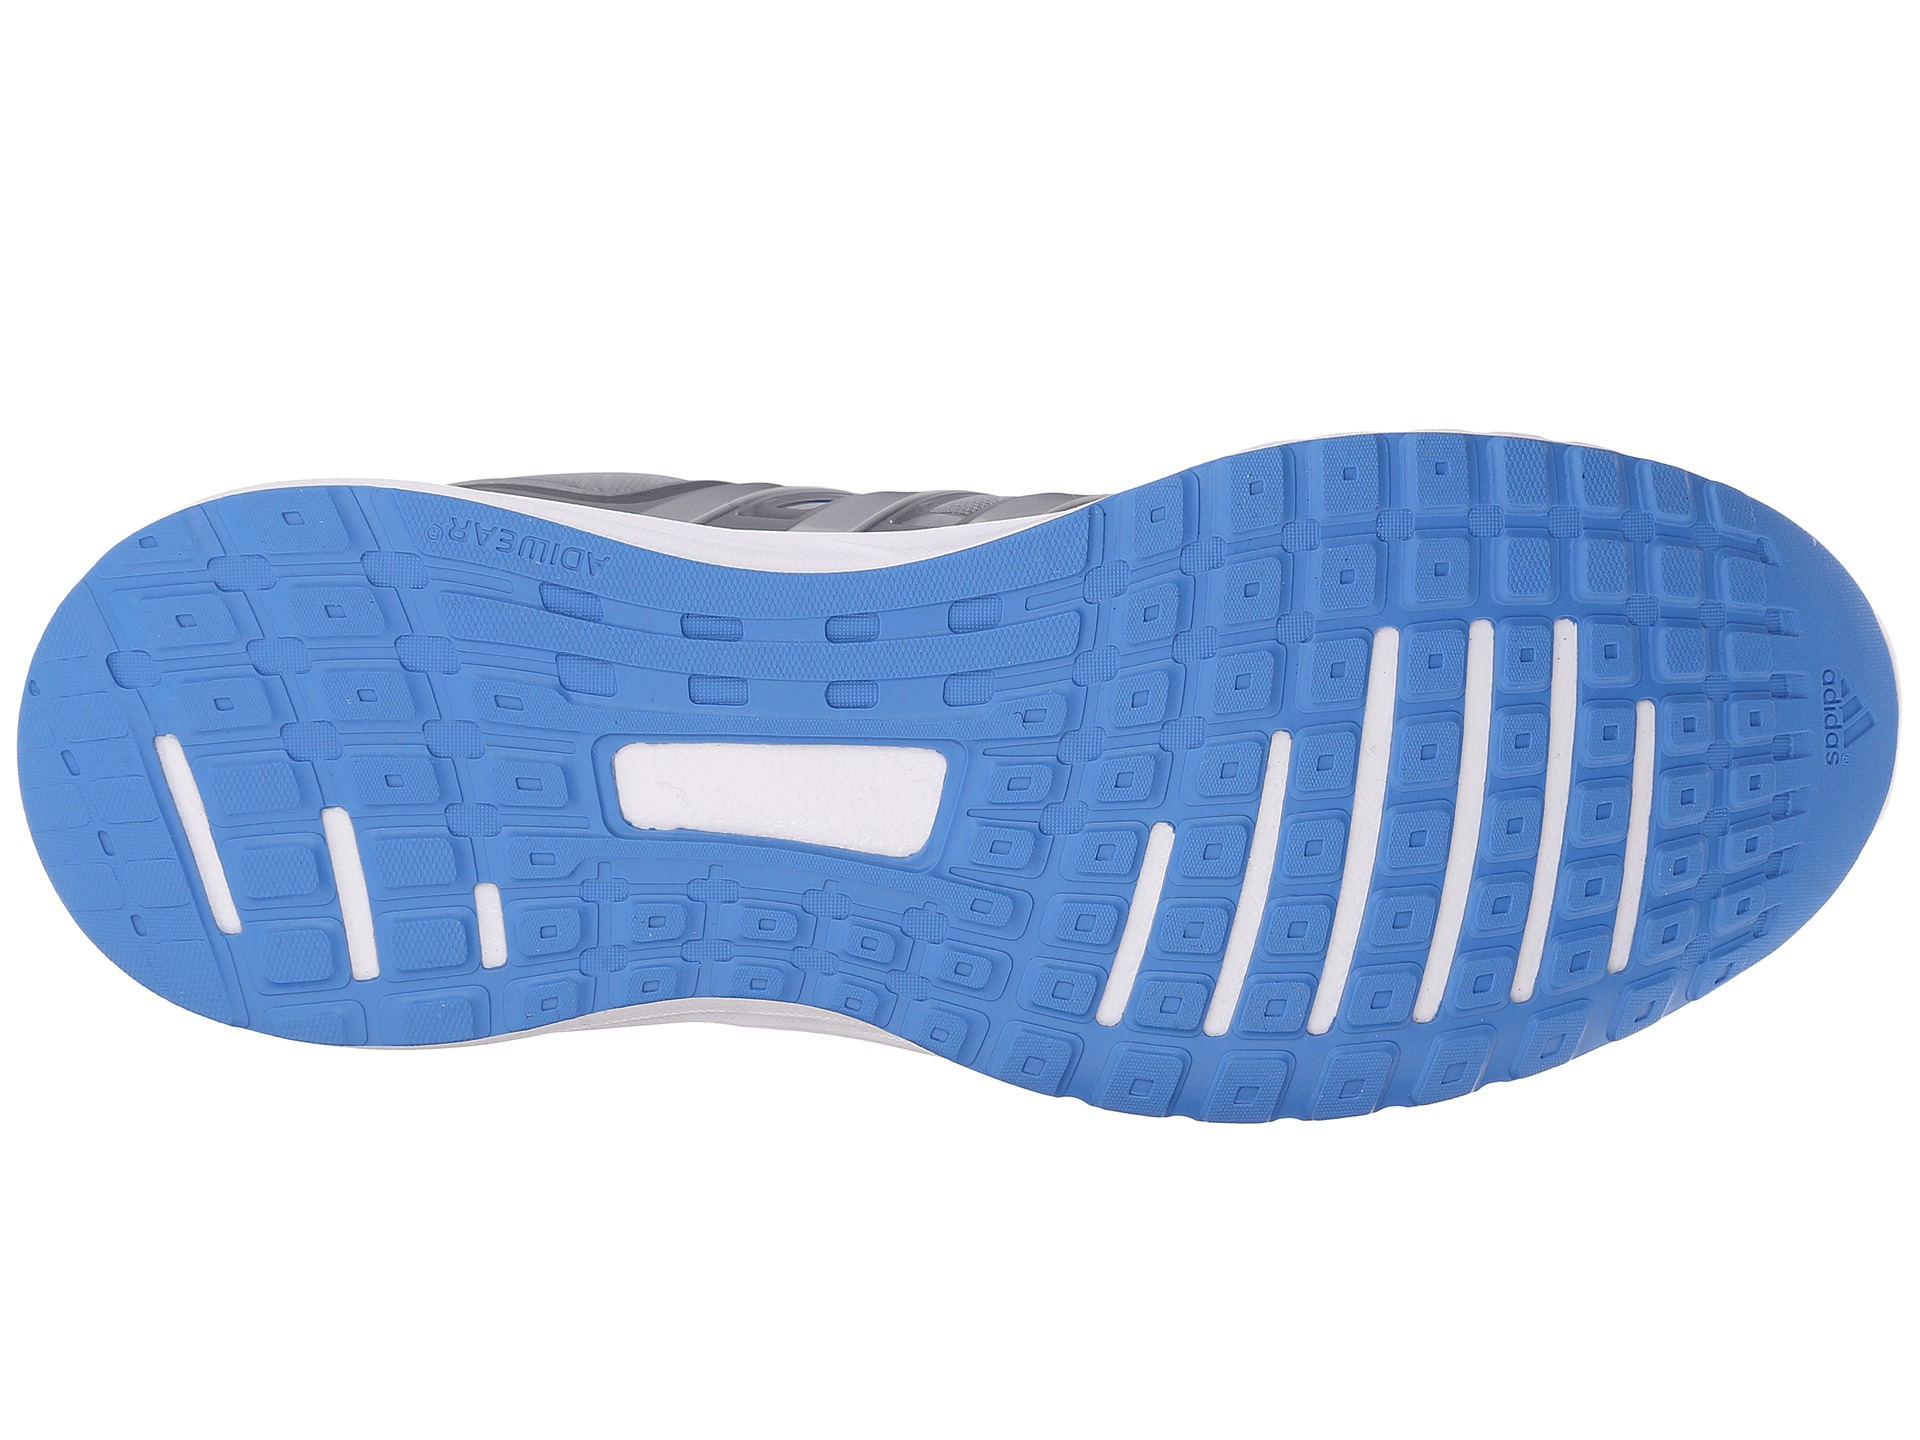 low priced 9a28e f5a2d Lyst - adidas Originals Galaxy Elite 2 in Gray for Men